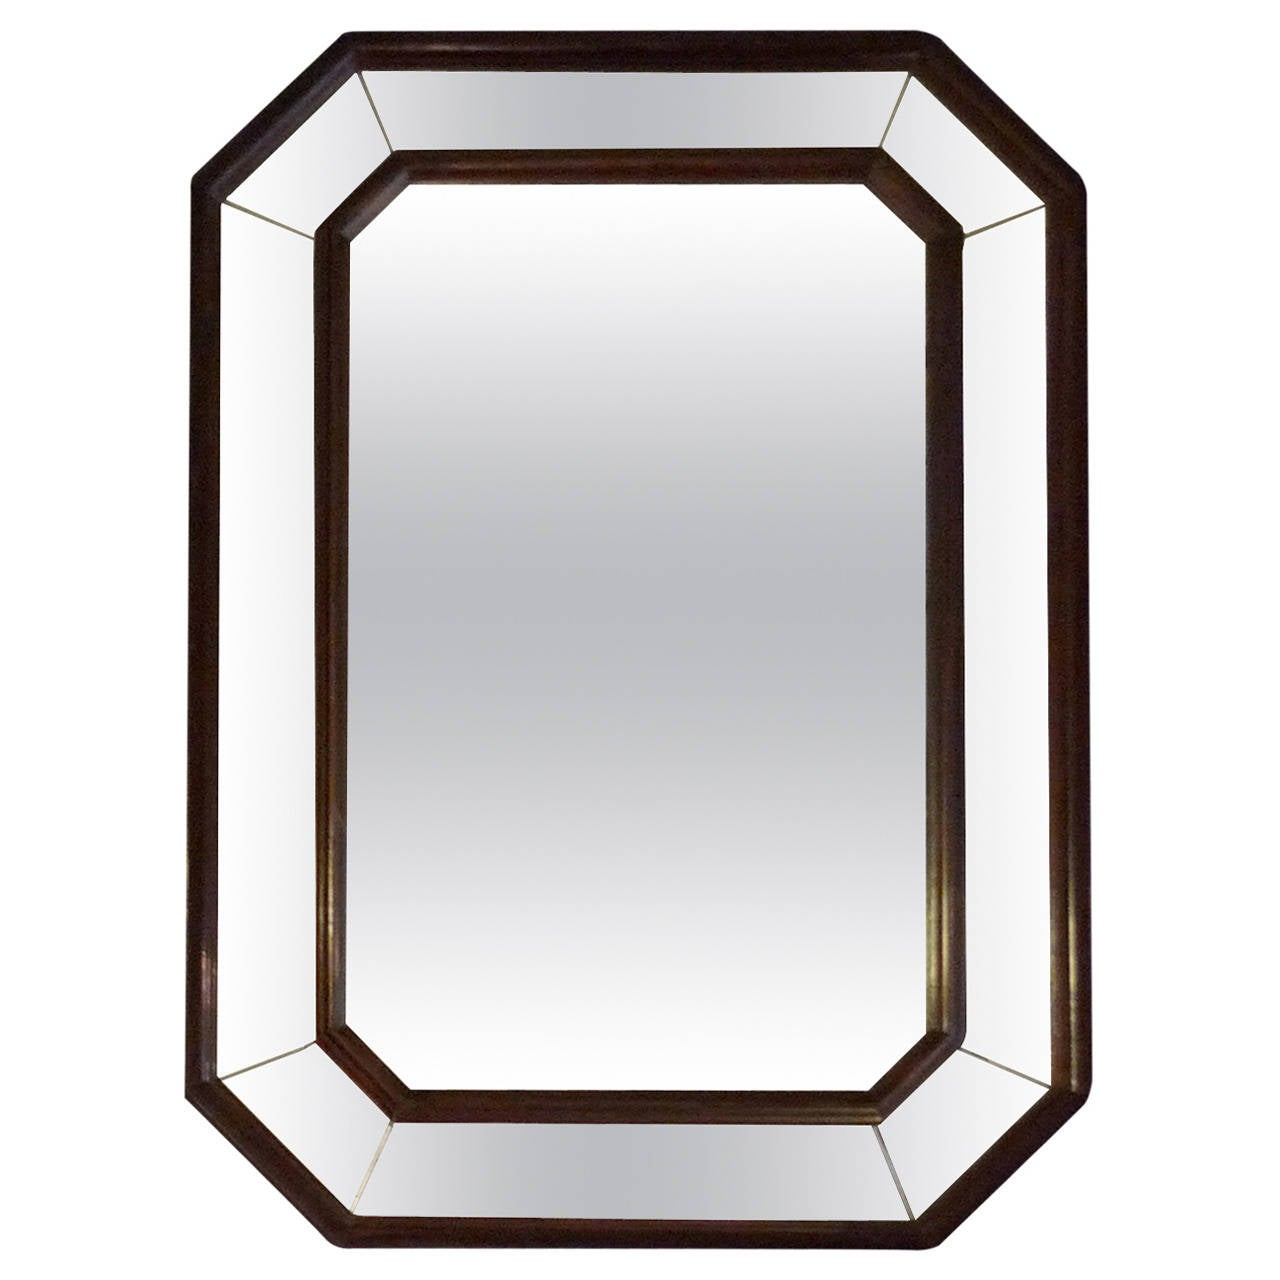 French art deco wood frame mirror with original glass at for Mirror frame